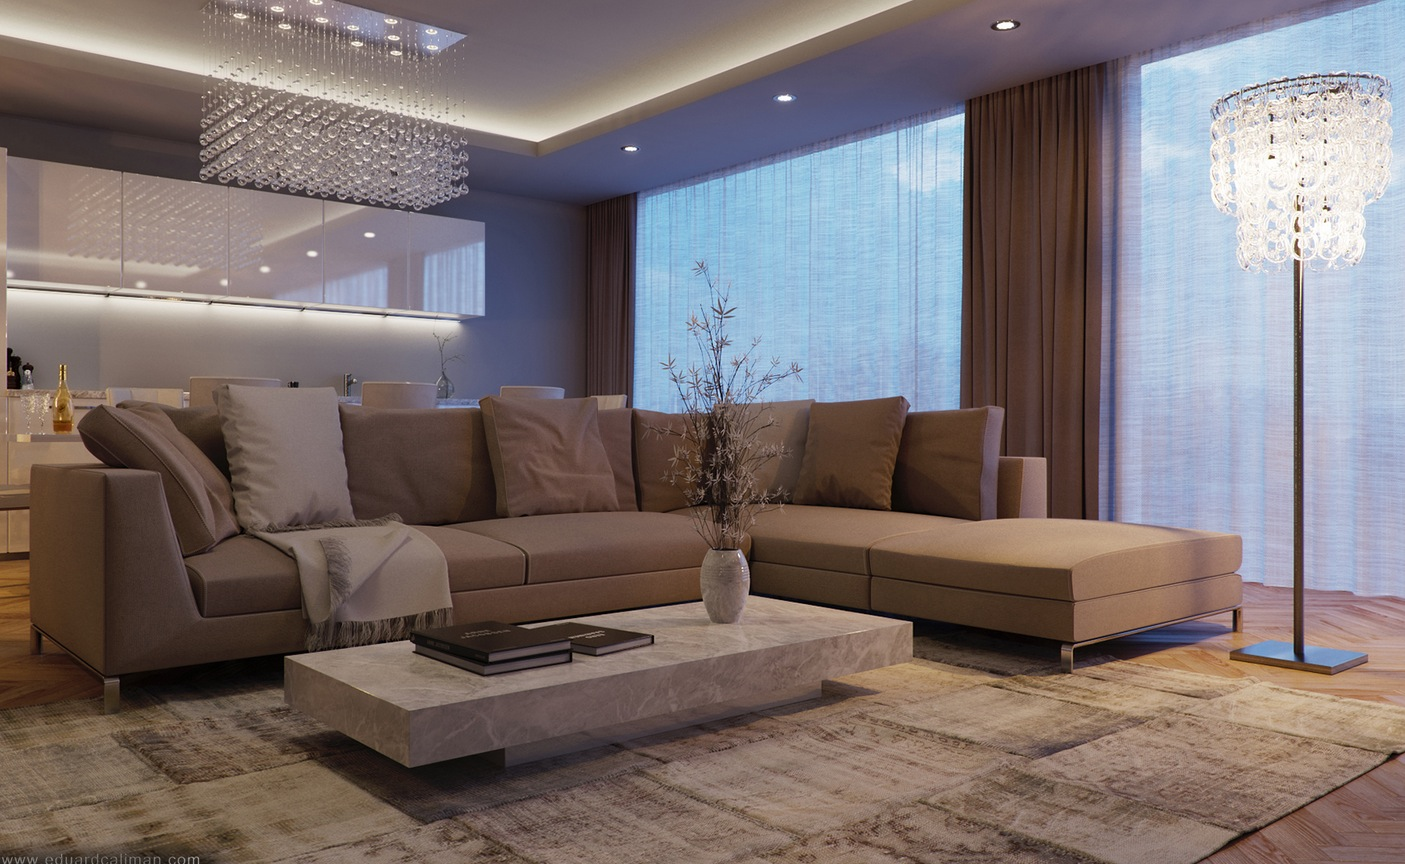 Taupe sofa interior design ideas for Sofa interior design